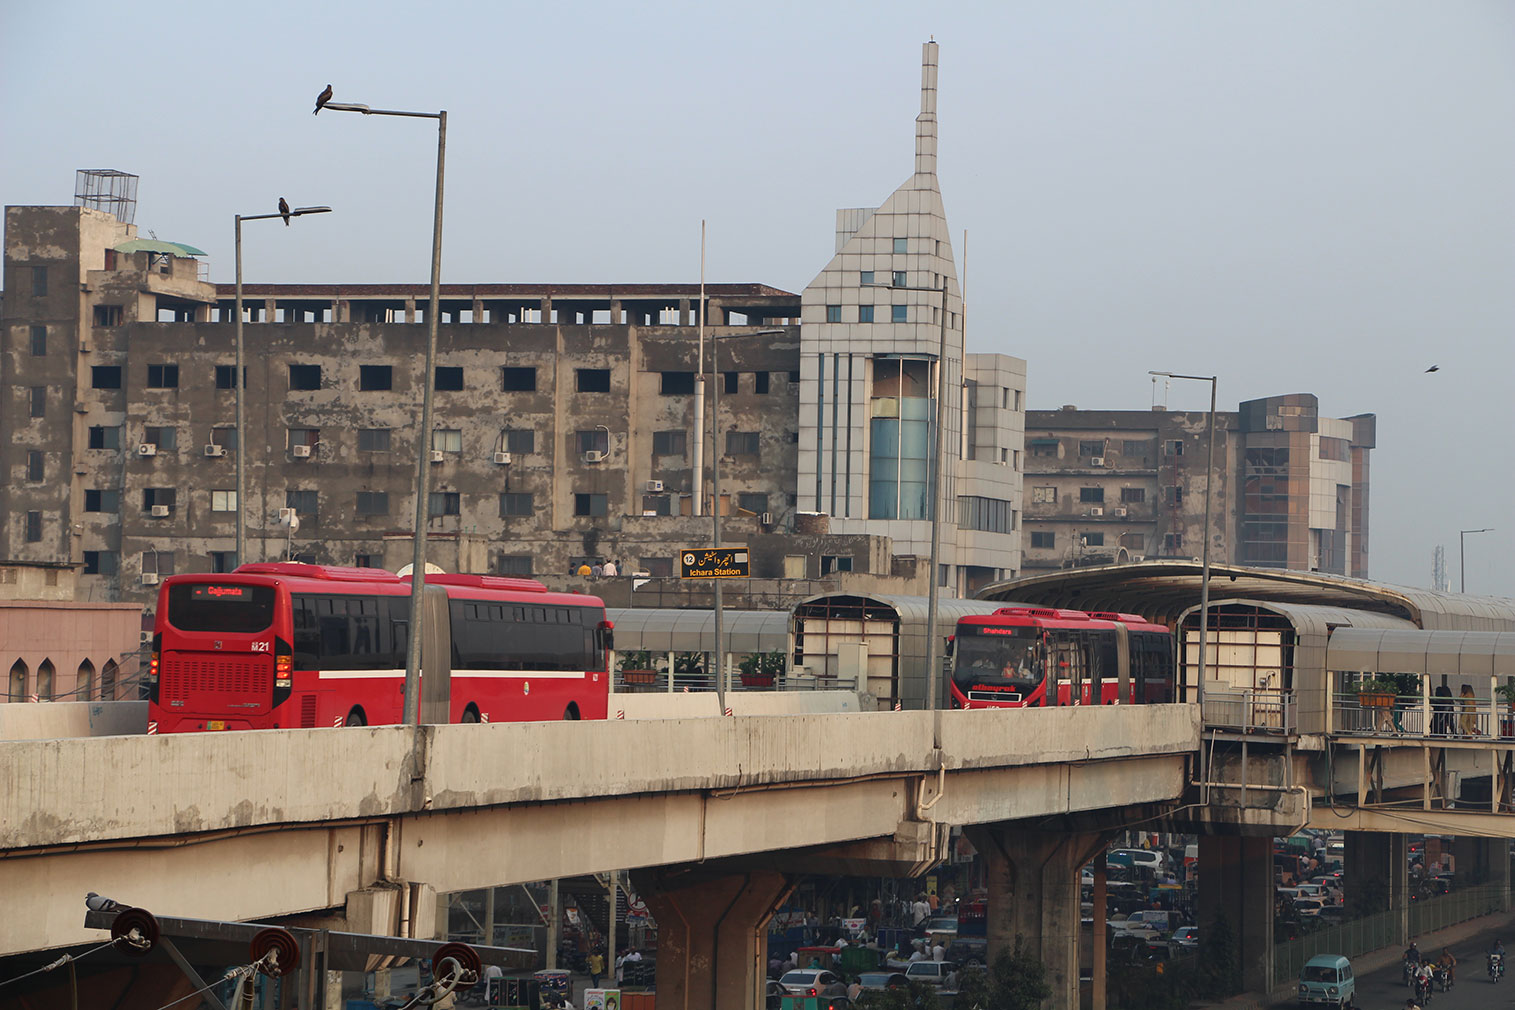 Lahore By Metro by Faizan Ahmed